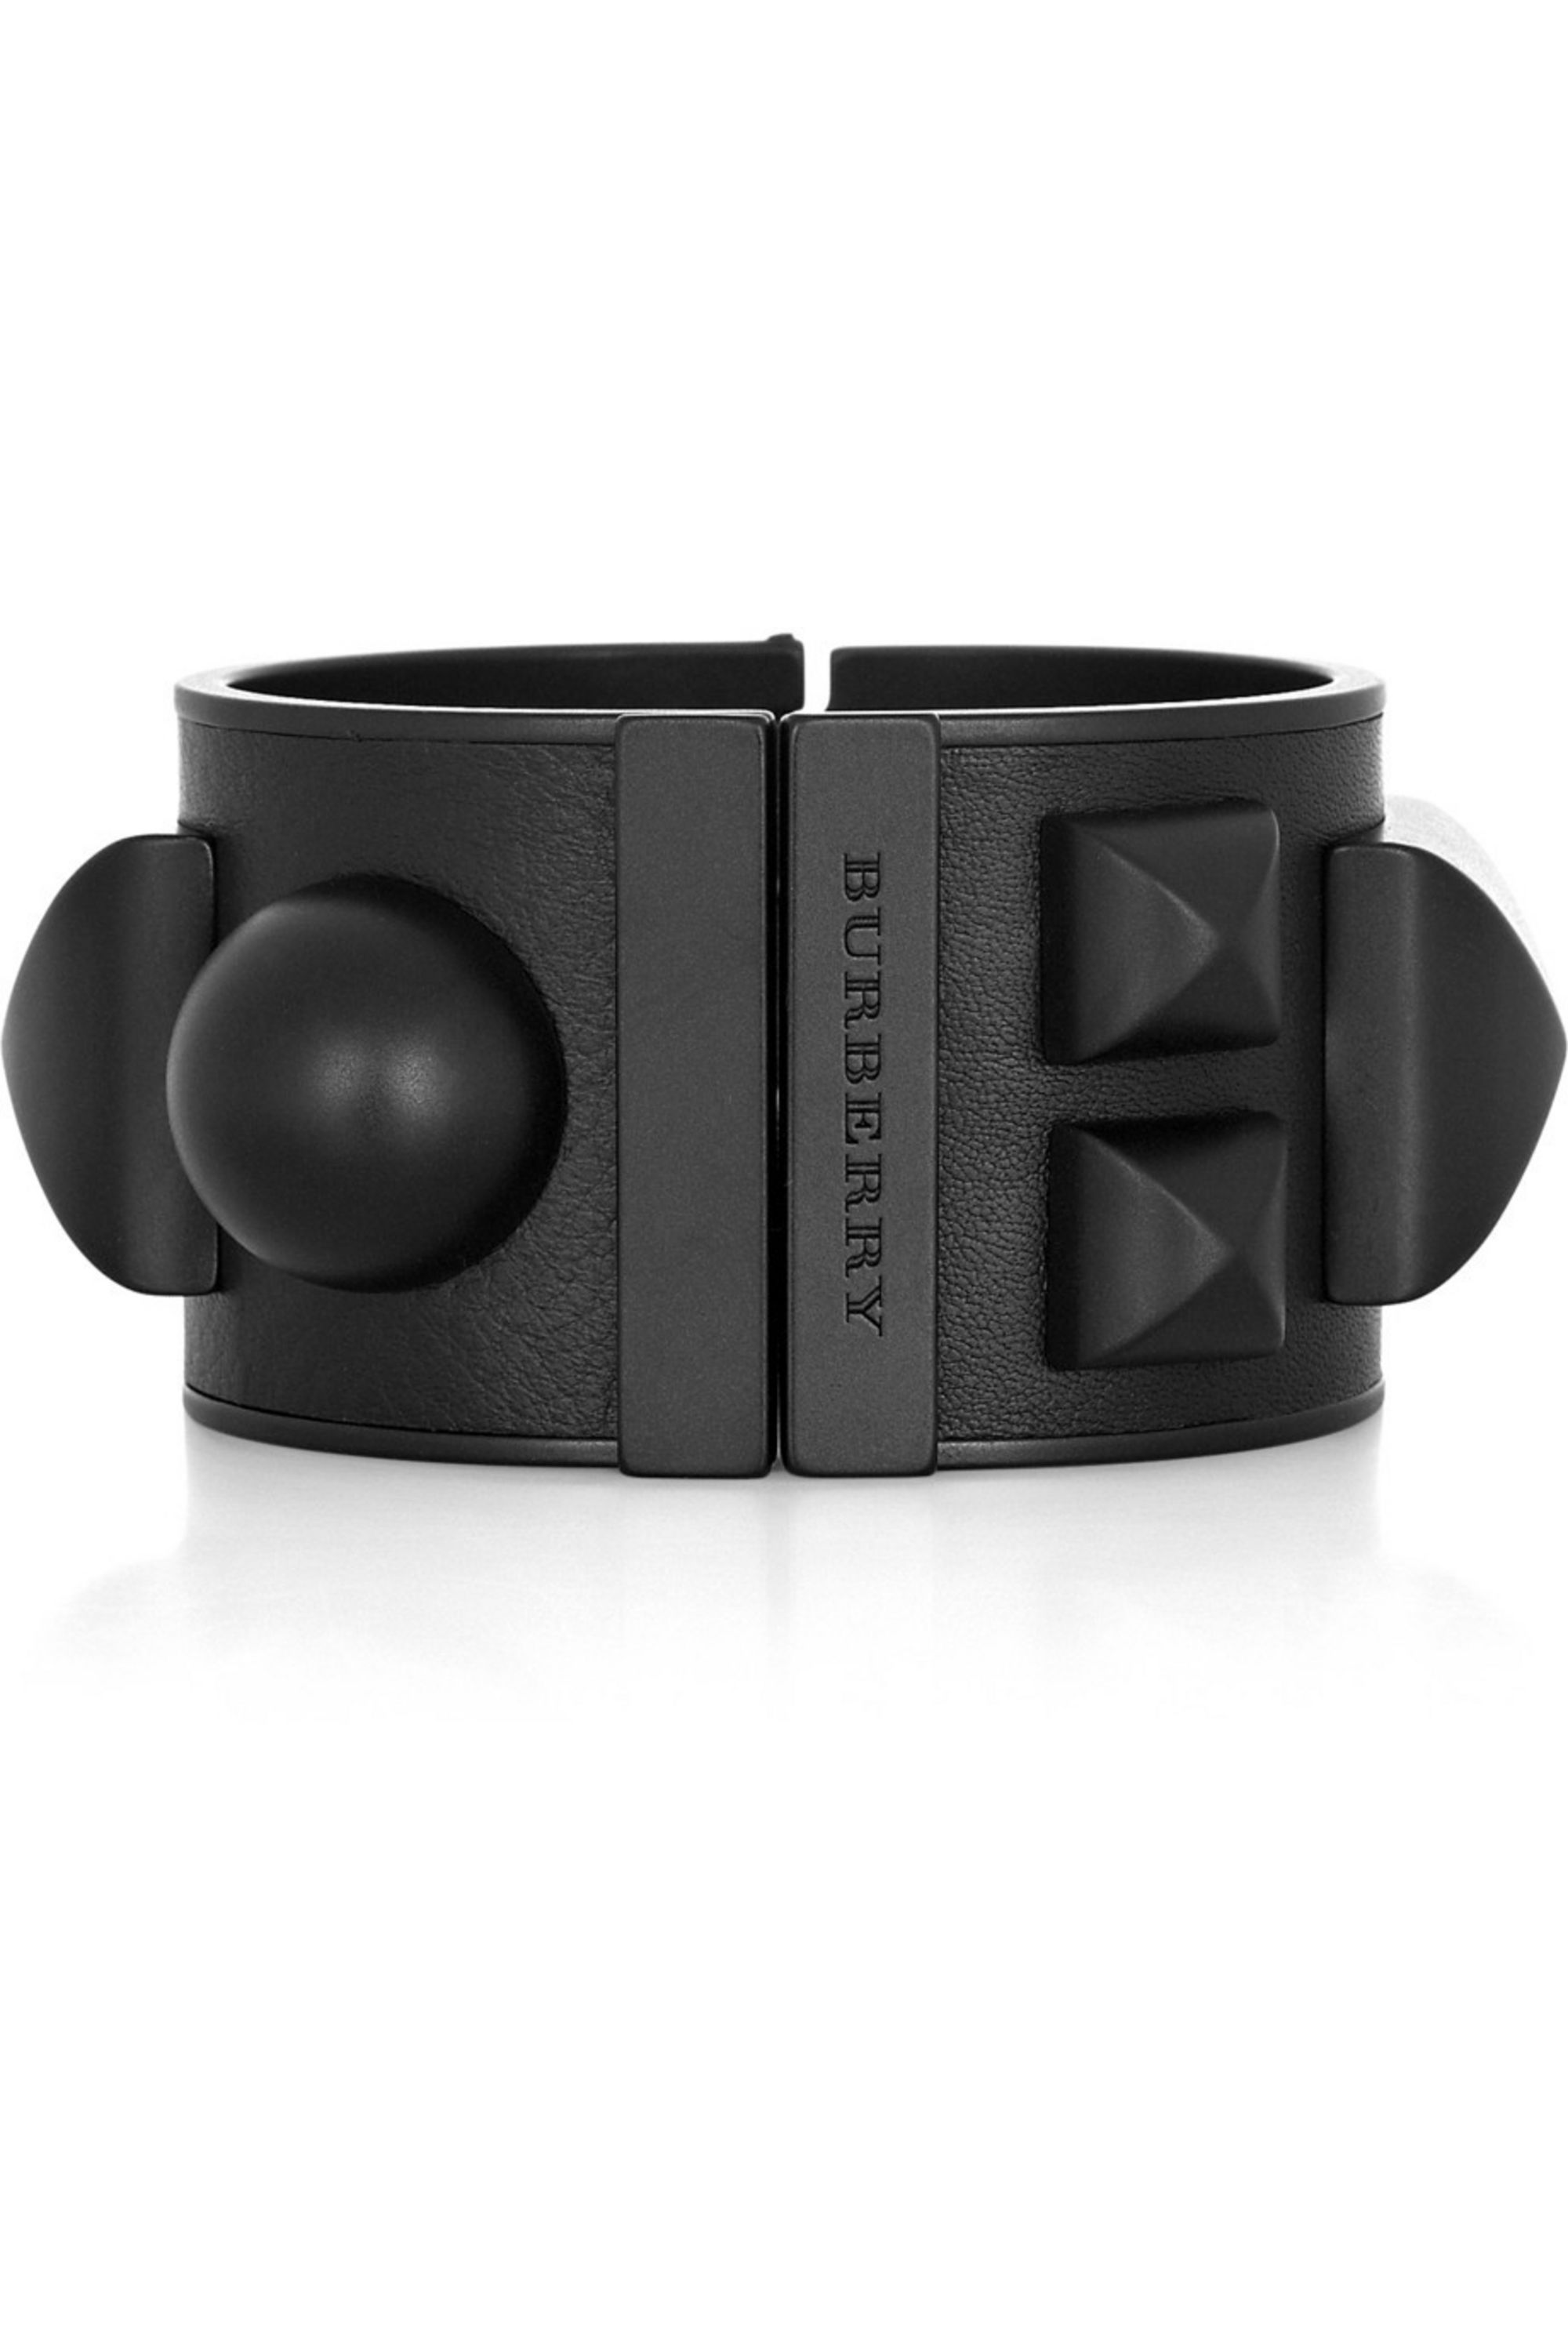 Burberry Leather and brass-studded cuff